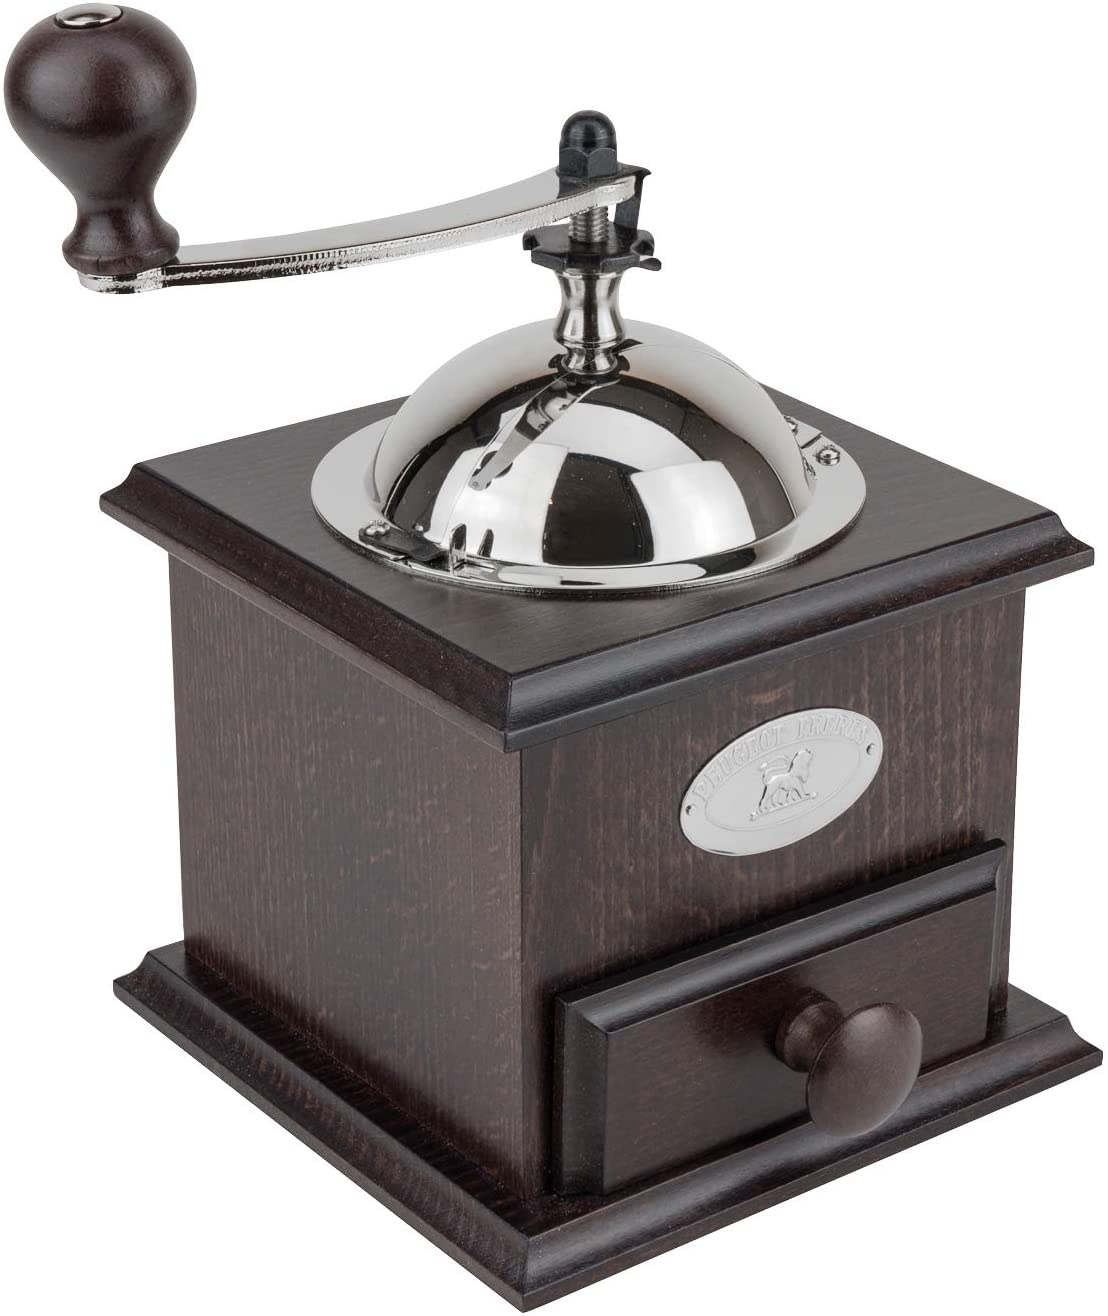 B00004SPD9 Peugeot Nostalgie Hand Coffee Mill, Walnut 61pHwOt66mL